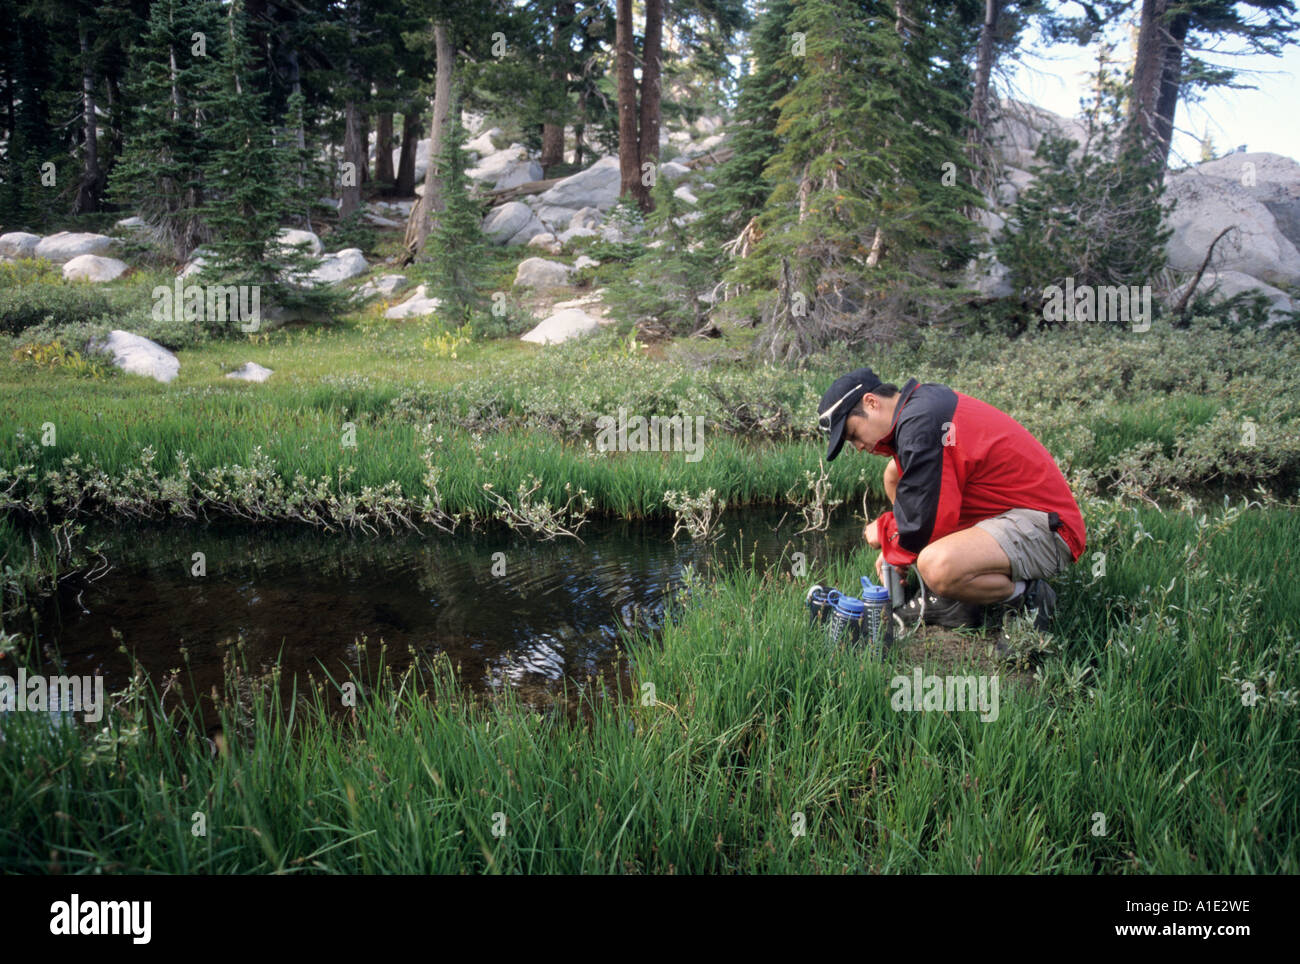 A hiker filters water from the headwaters of Squaw Creek in the Tahoe National Forest California United States of Stock Photo